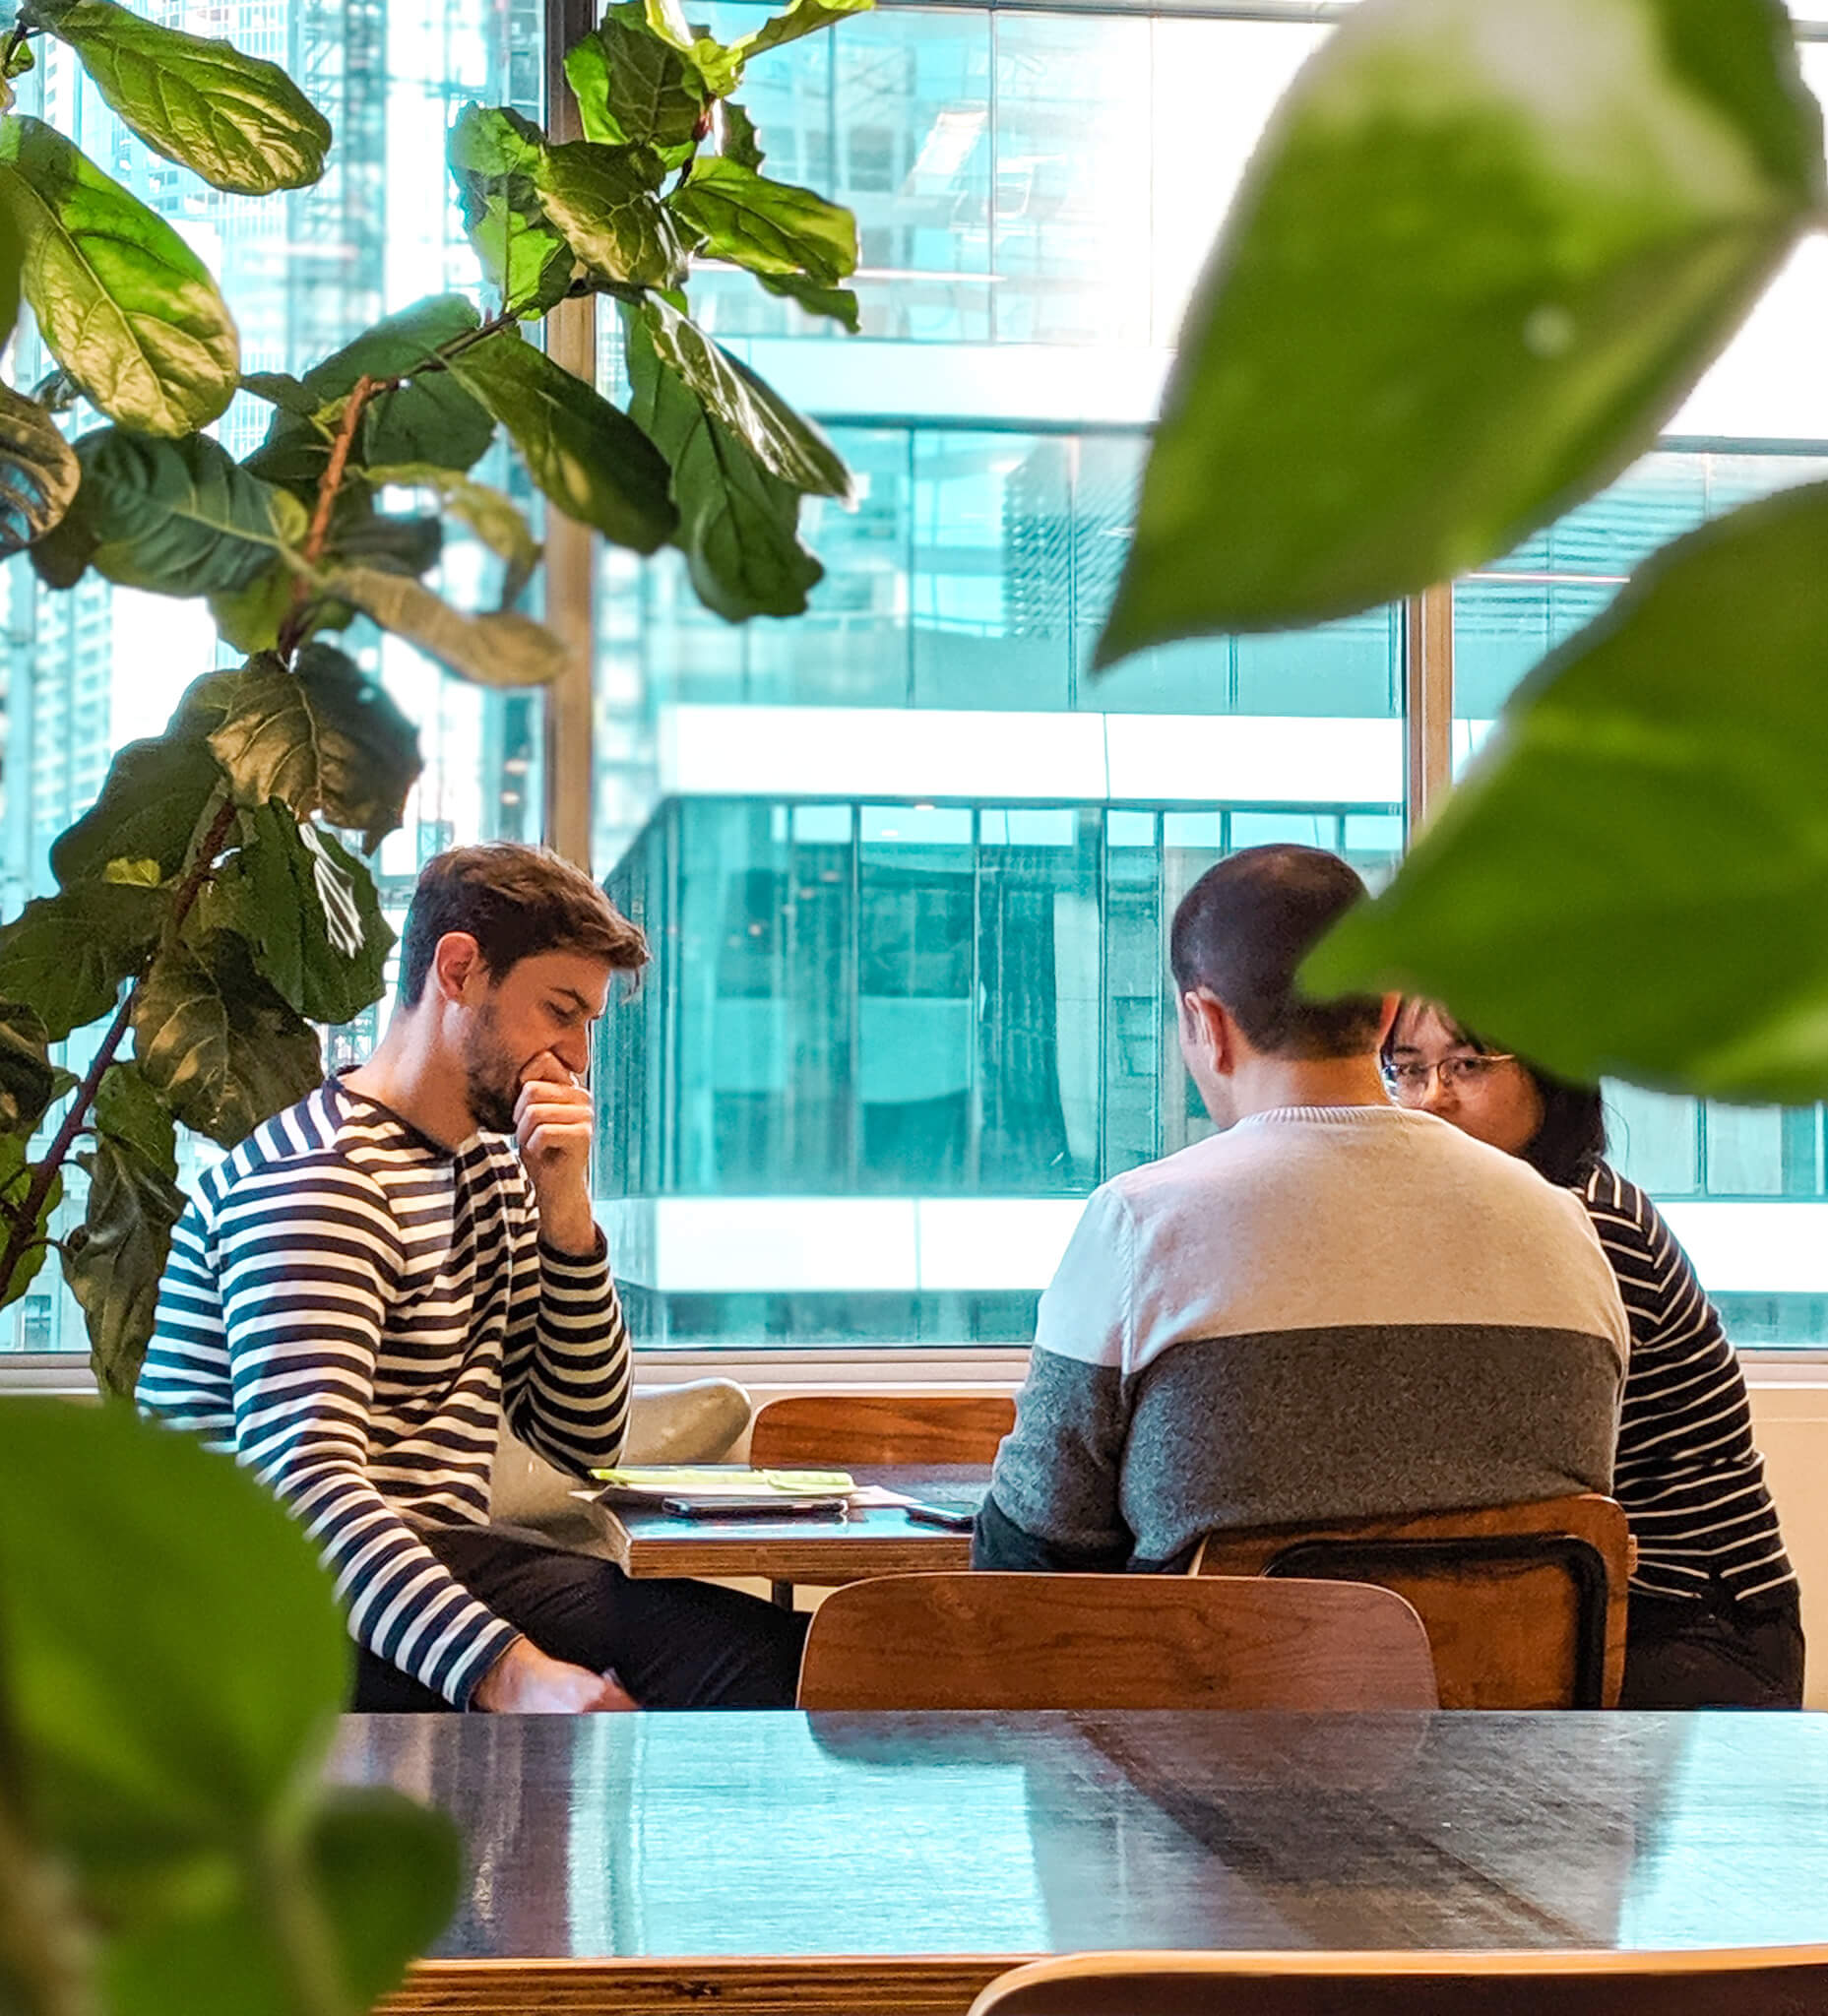 Strategy consulting, group of people, office plants, melbourne office, technical discussion, office sitting area, office with high rise view, office greenery, casual business meeting